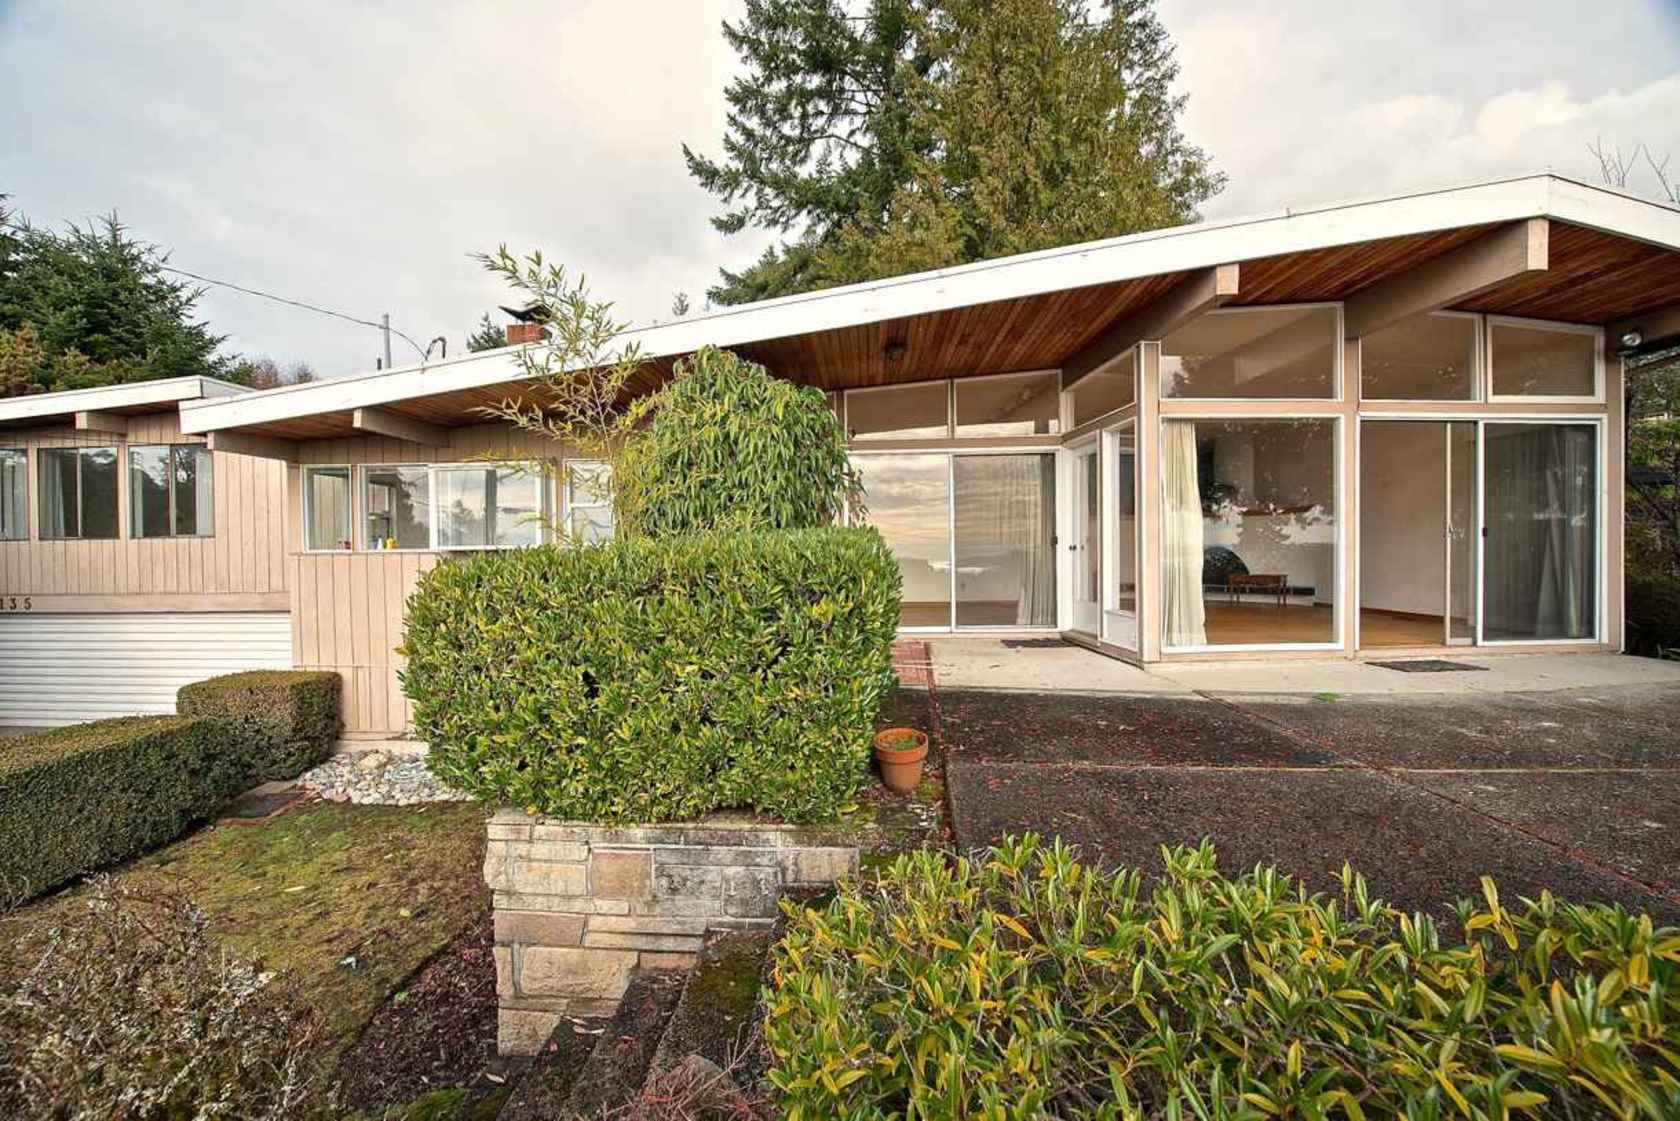 003 at 4135 Burkehll Place, Bayridge, West Vancouver